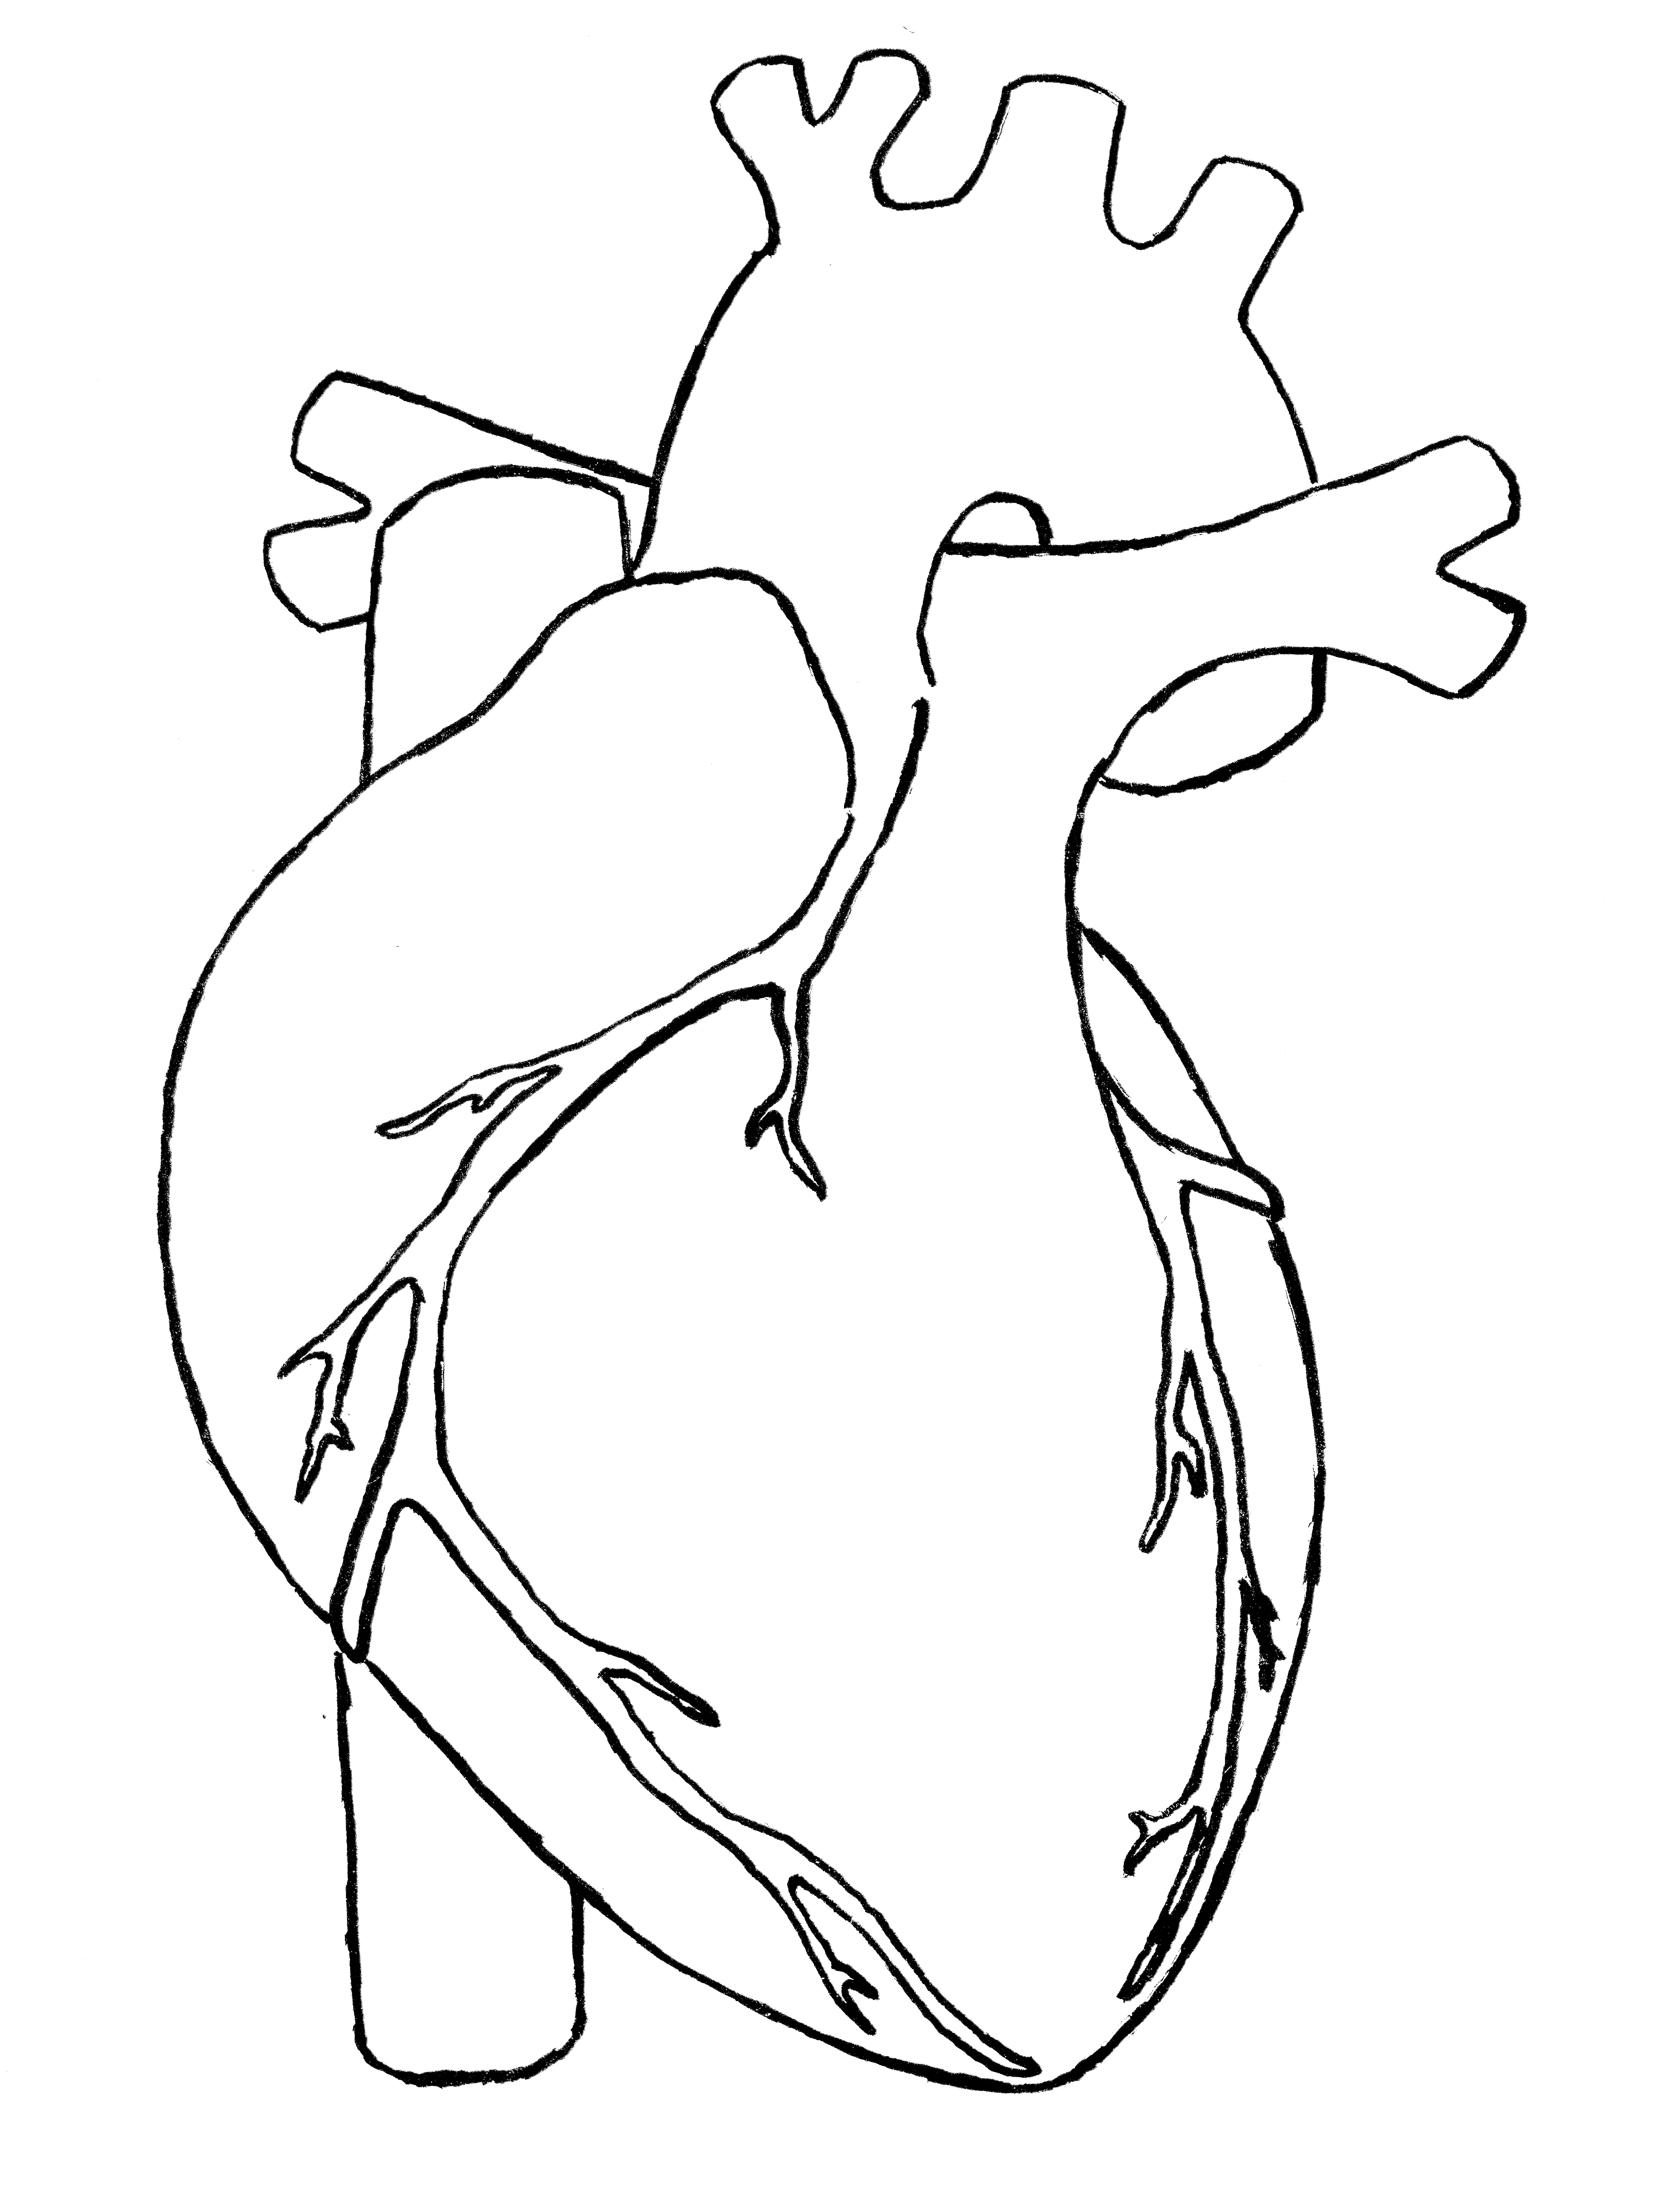 Real heart clipart jpg library download Real Heart Drawing | Clipart Panda - Free Clipart Images jpg library download